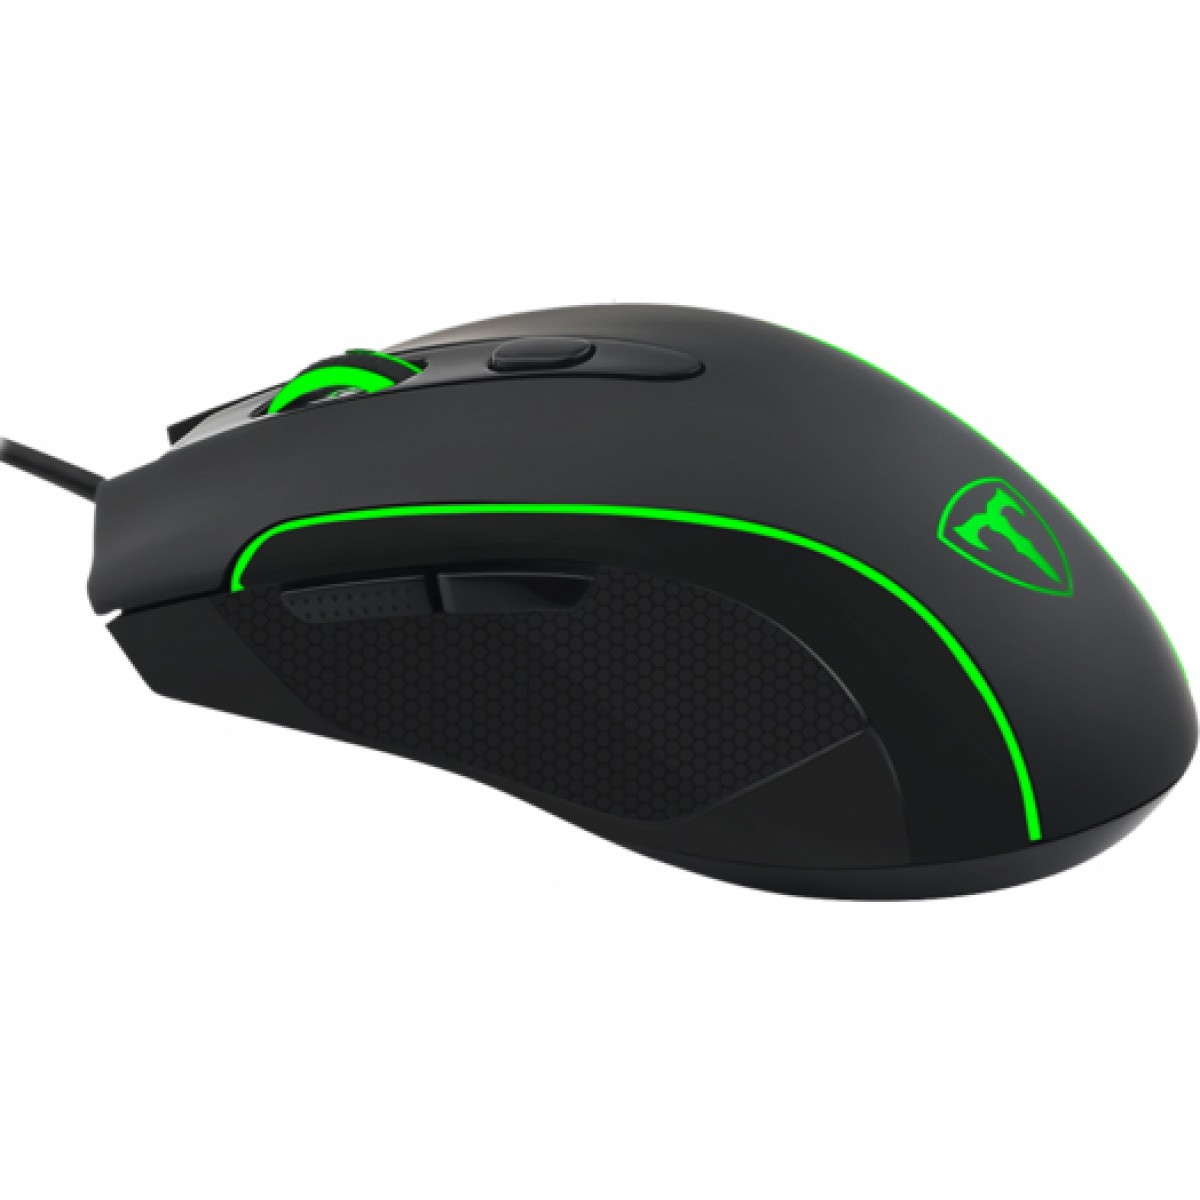 Mouse Gamer T-Dagger Private RGB 3200 DPI, 6 Botões, Black